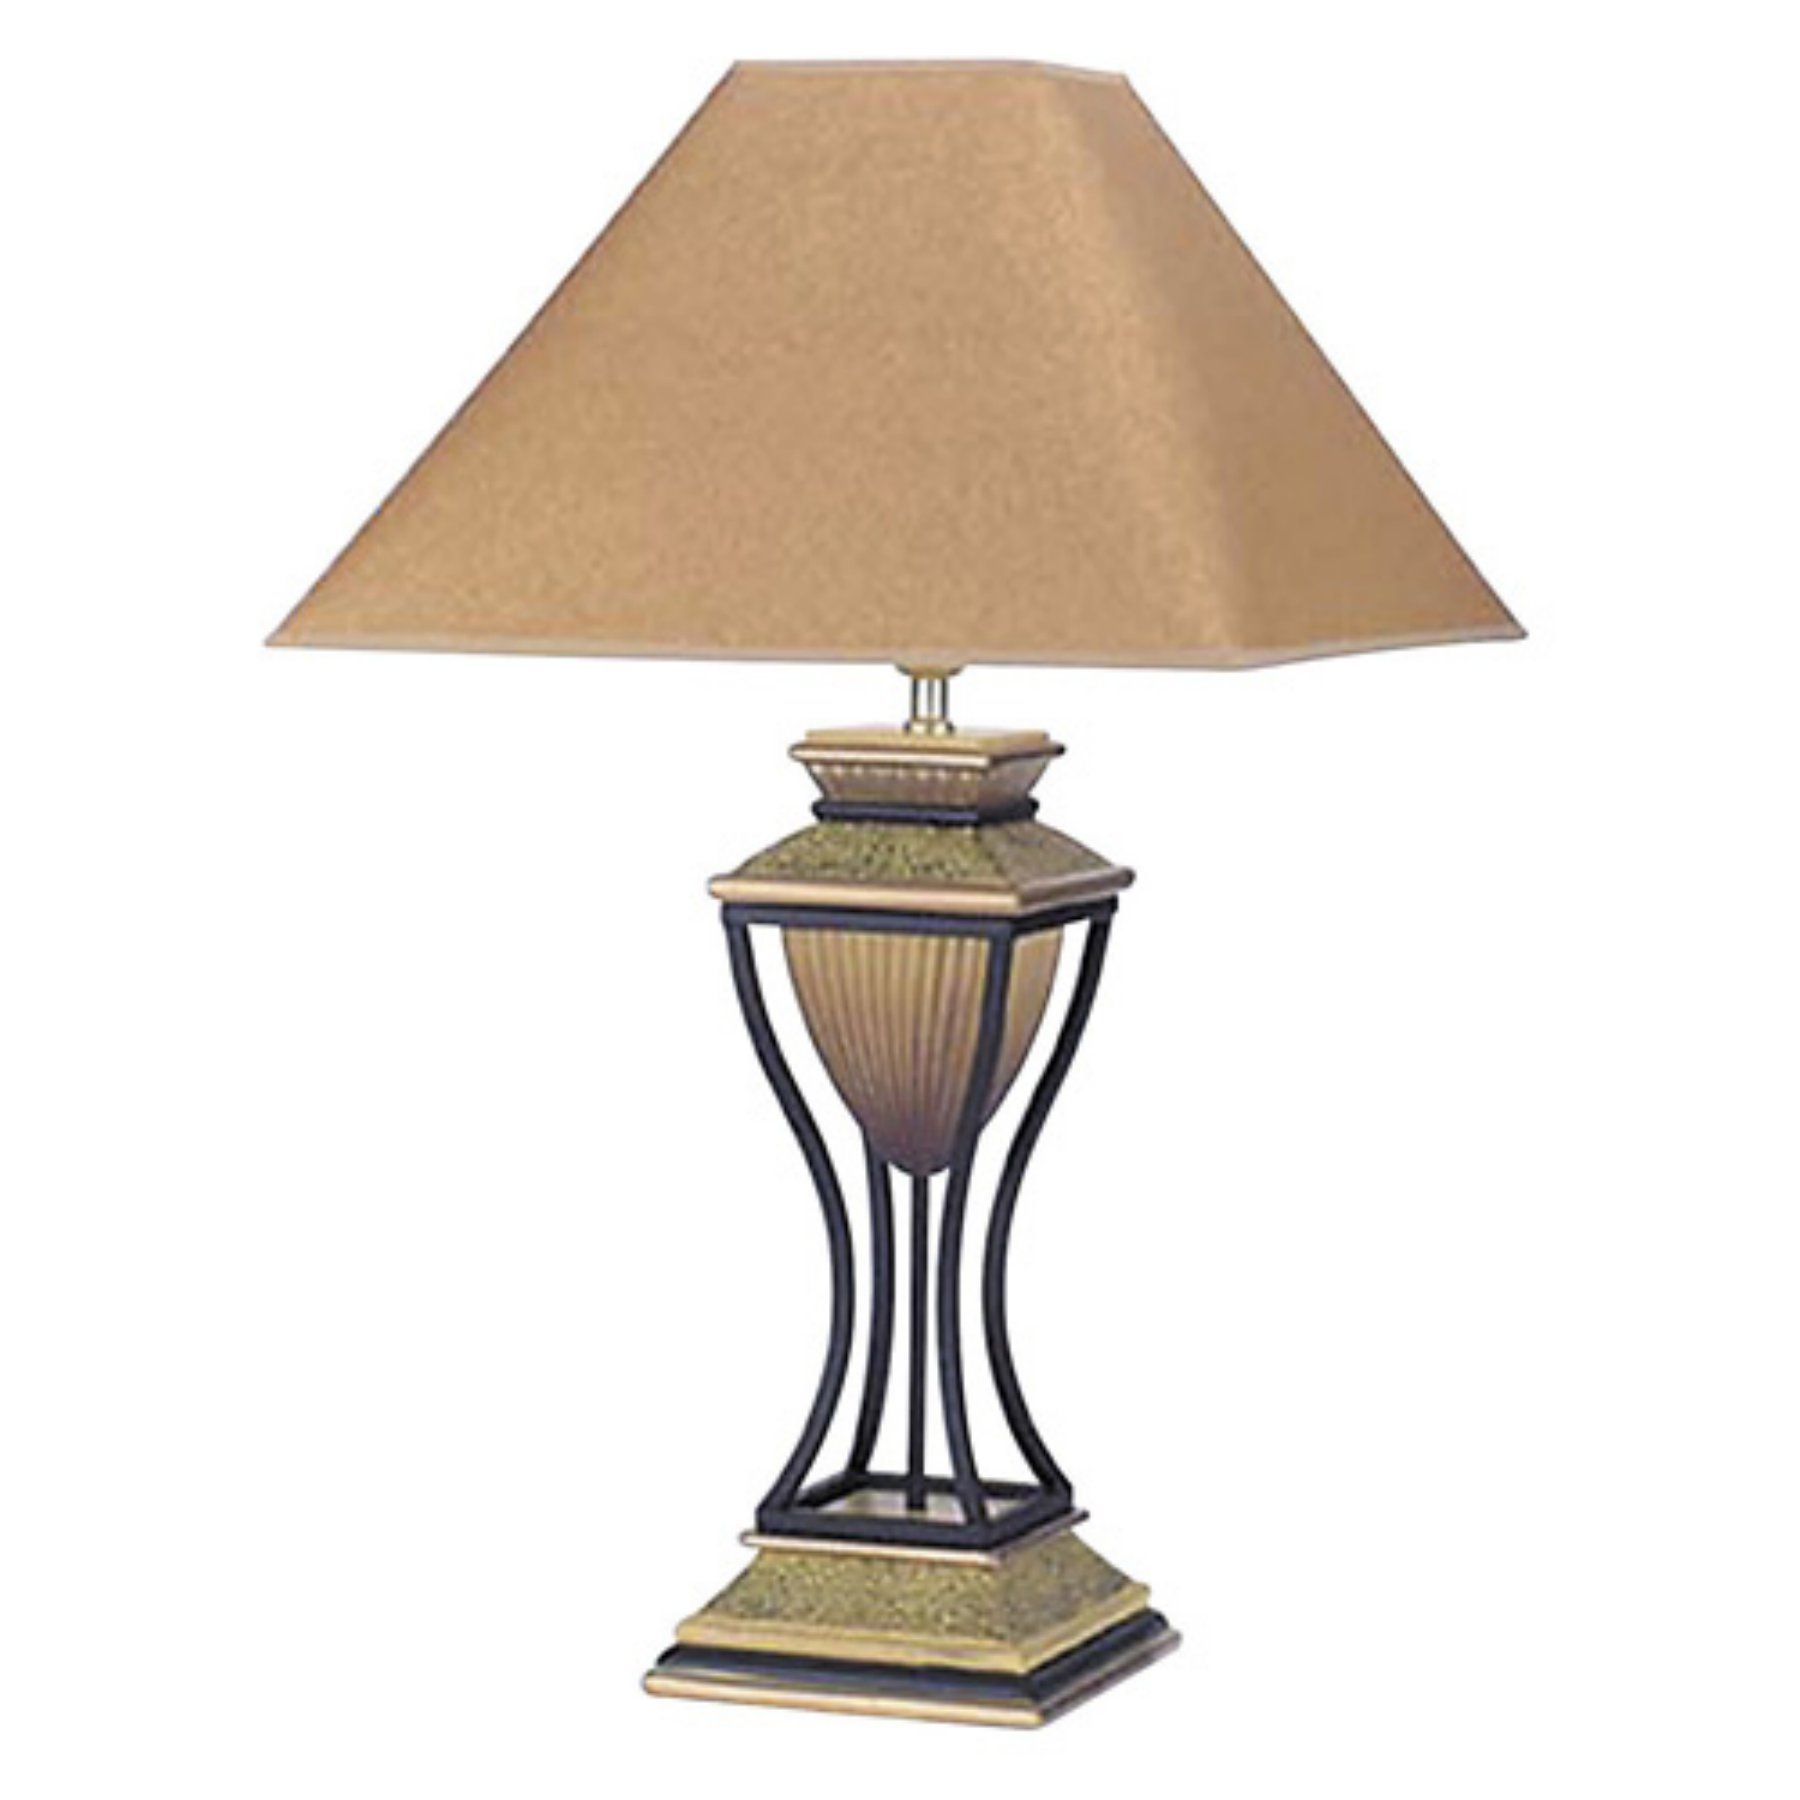 Ore International 8008 Home Deco Table Lamp - Antique Bronze - 8008